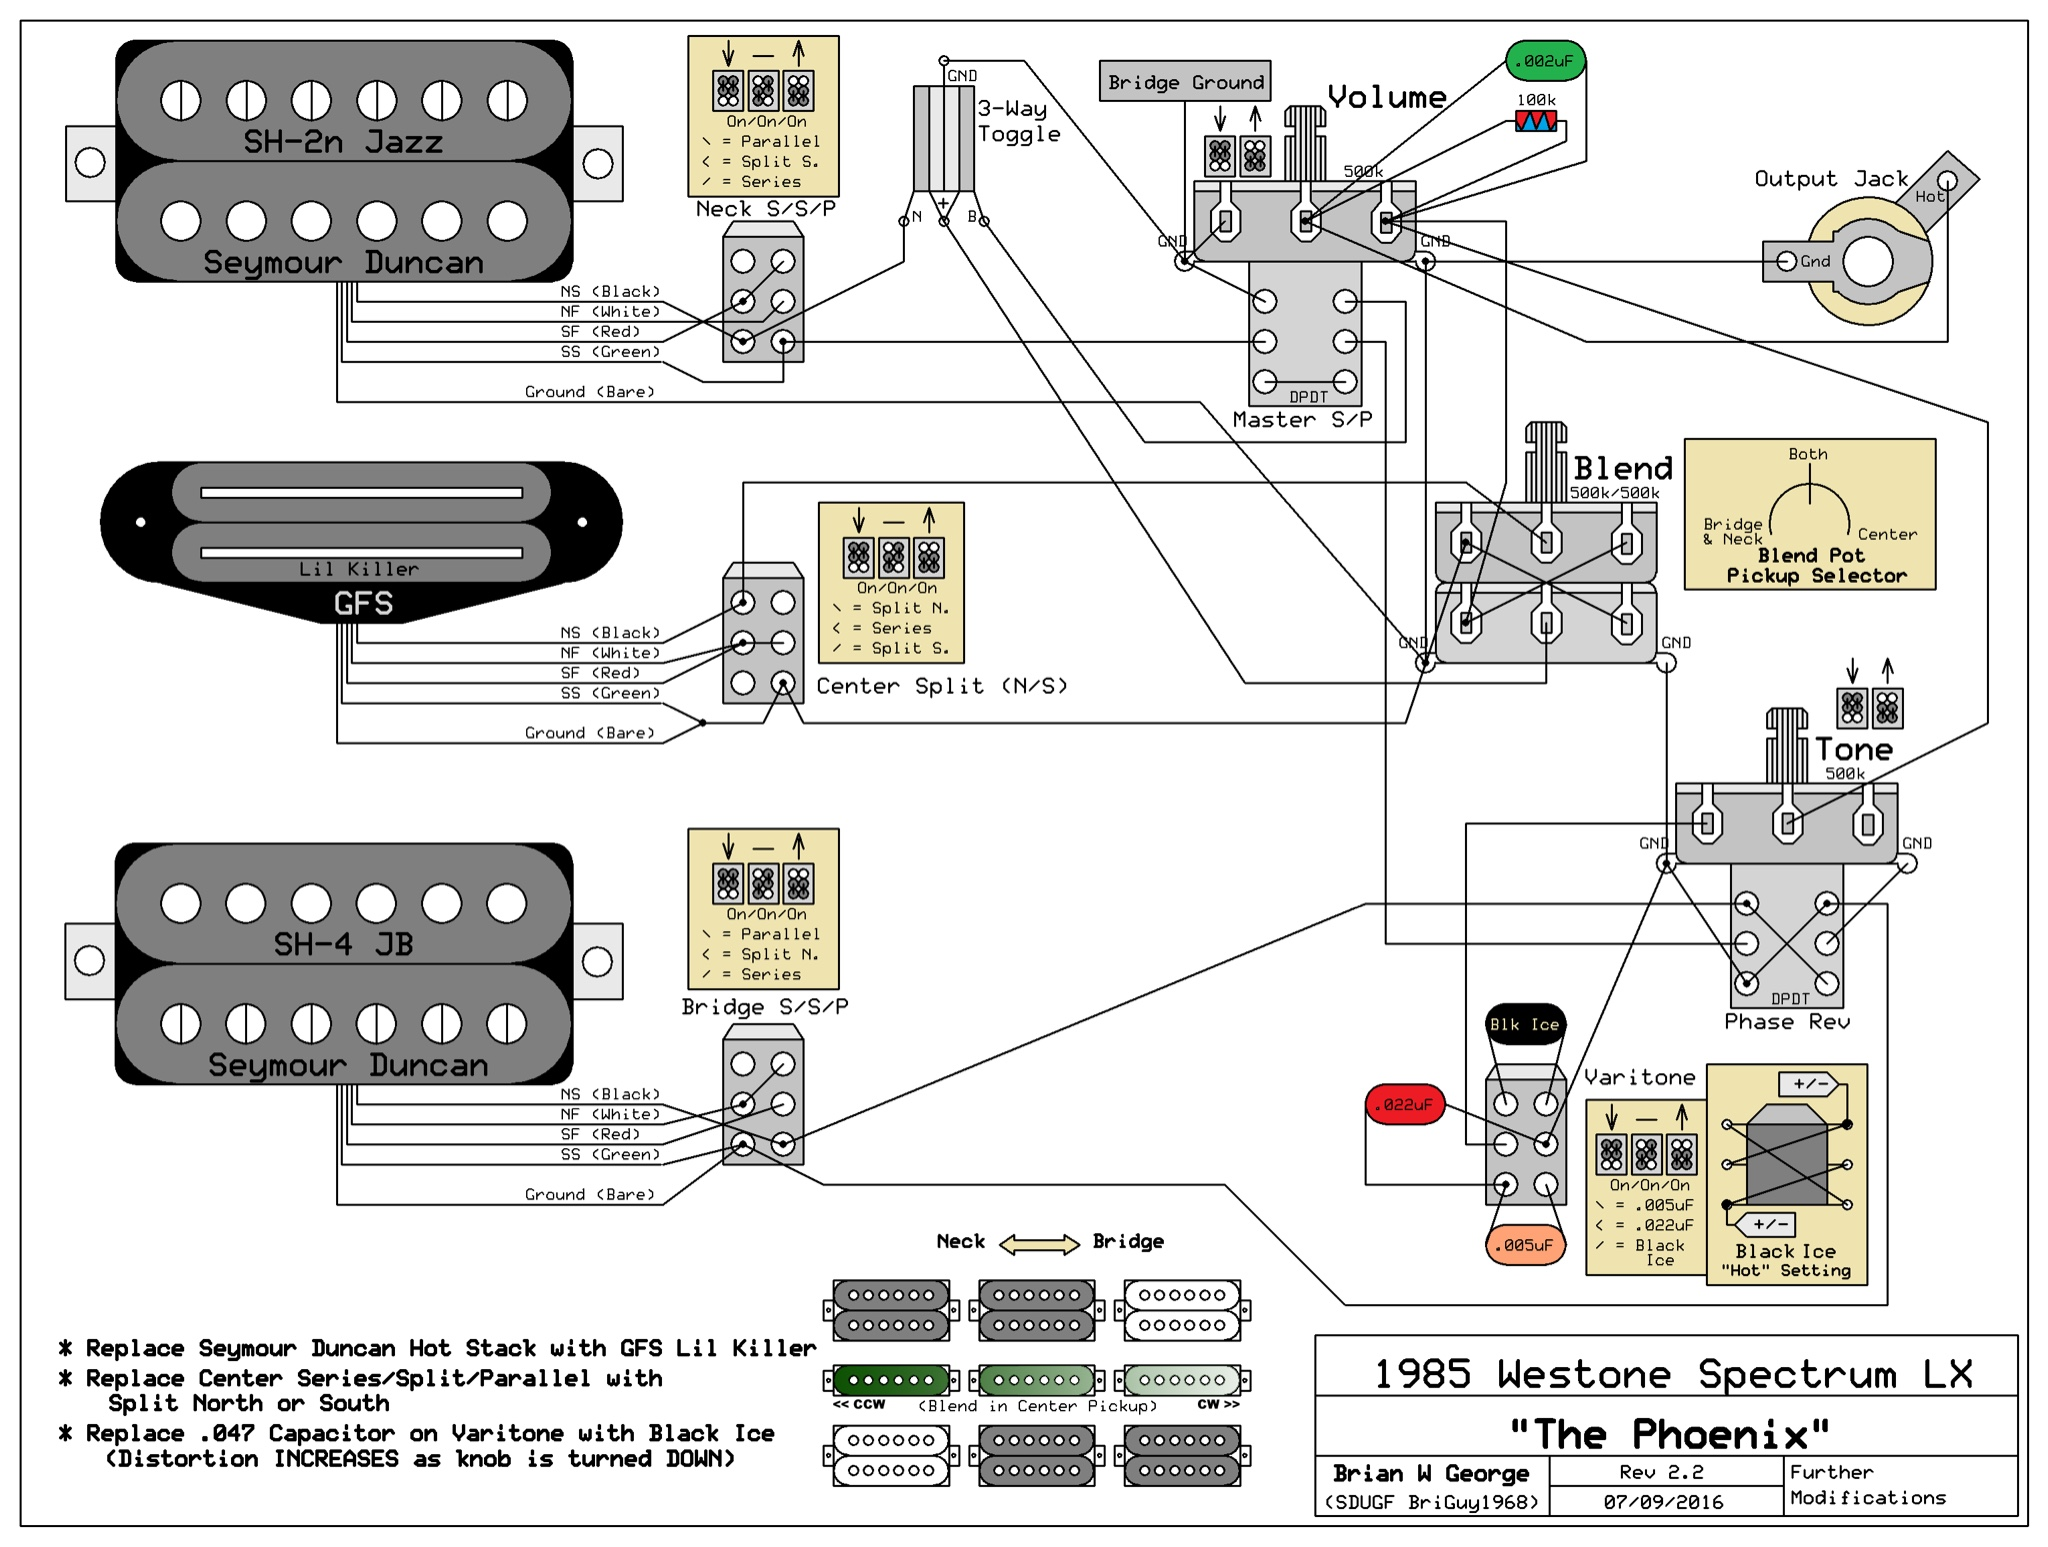 You Know What Would Be The Least Pleasant Thing In World To Wire Emg89 Wiring And Giggles Heres Diagram Thats Currently My 85 Westone